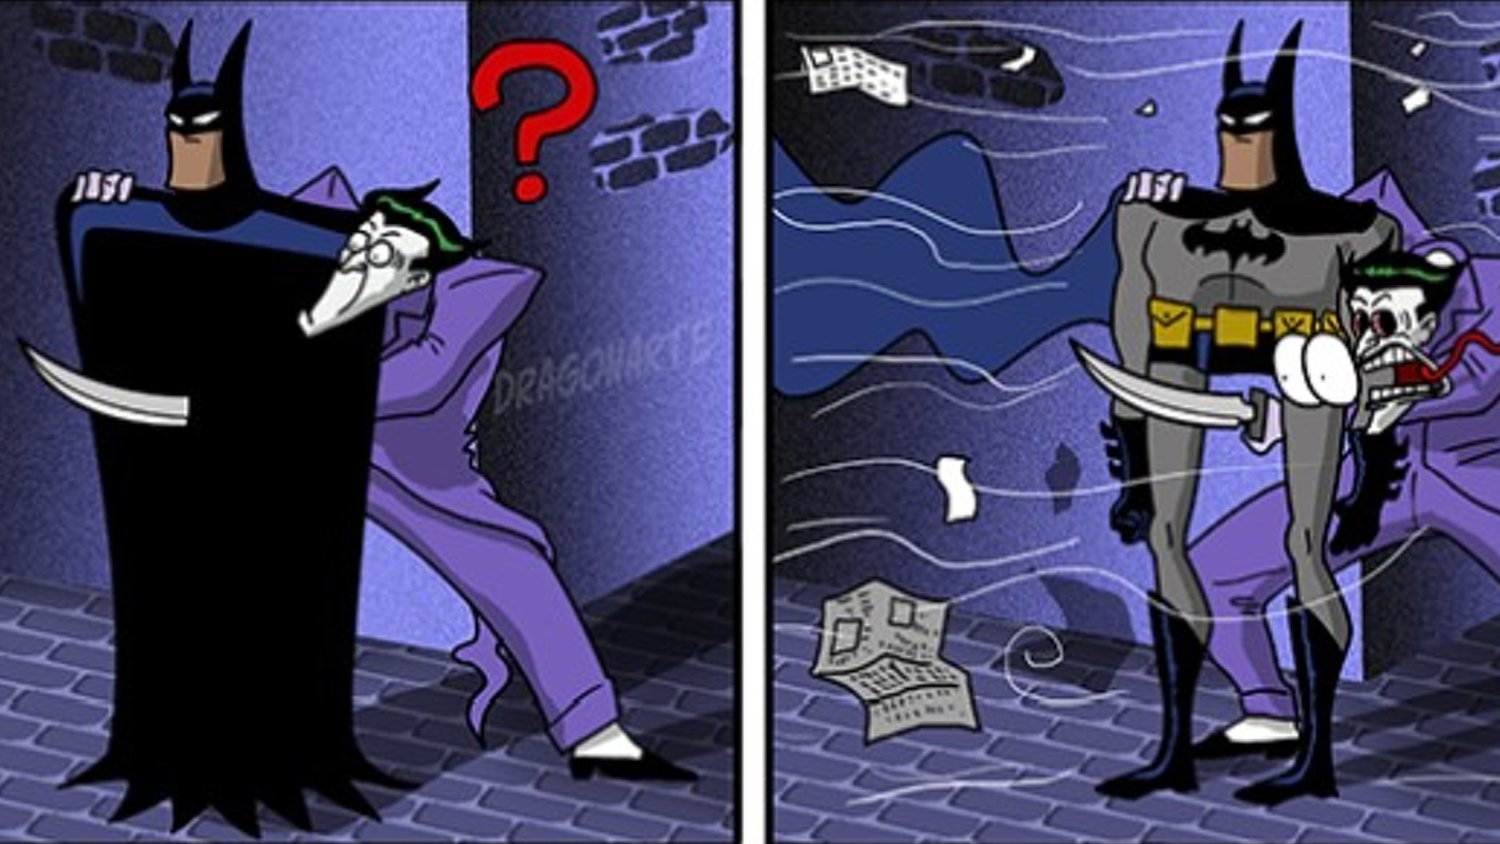 Batman Is the Real Joker in This Funny Comic Strip Series